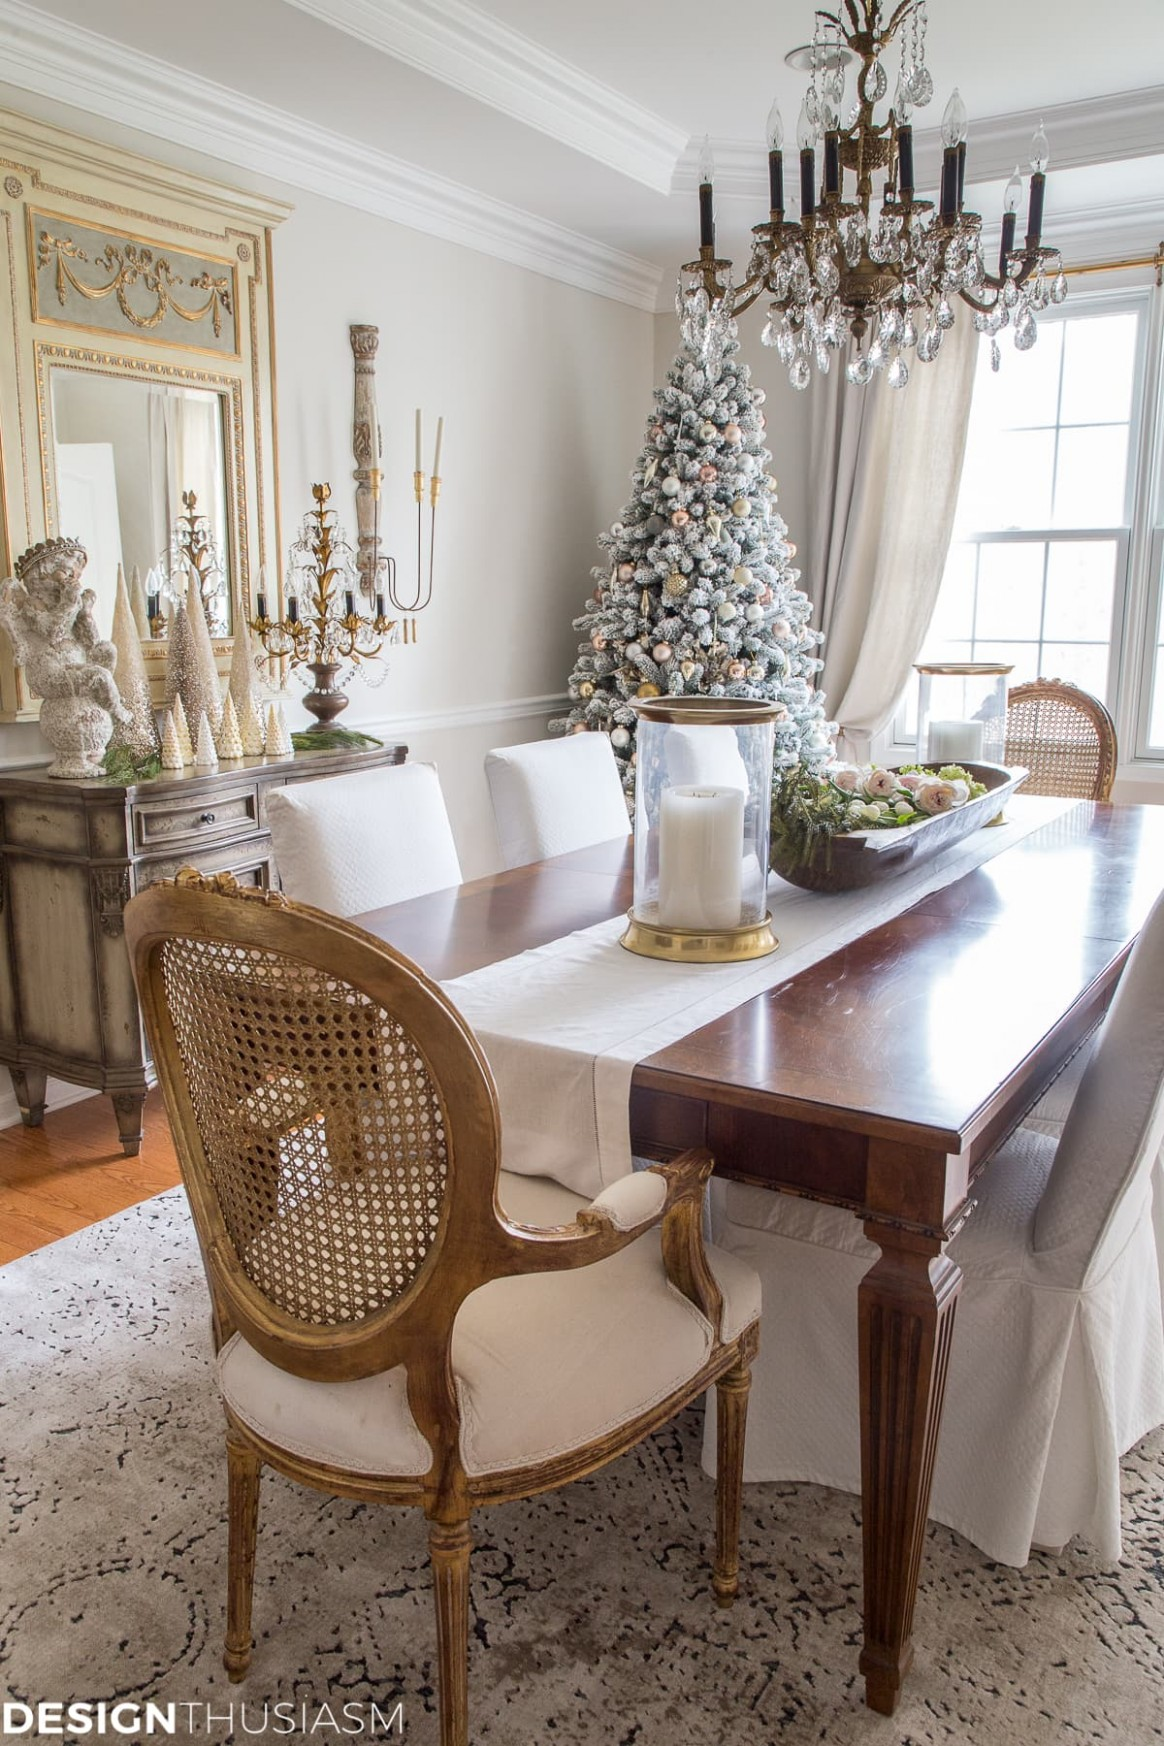 Elegant Holiday Decorating Ideas for the Dining Room - Dining Room Theme Ideas